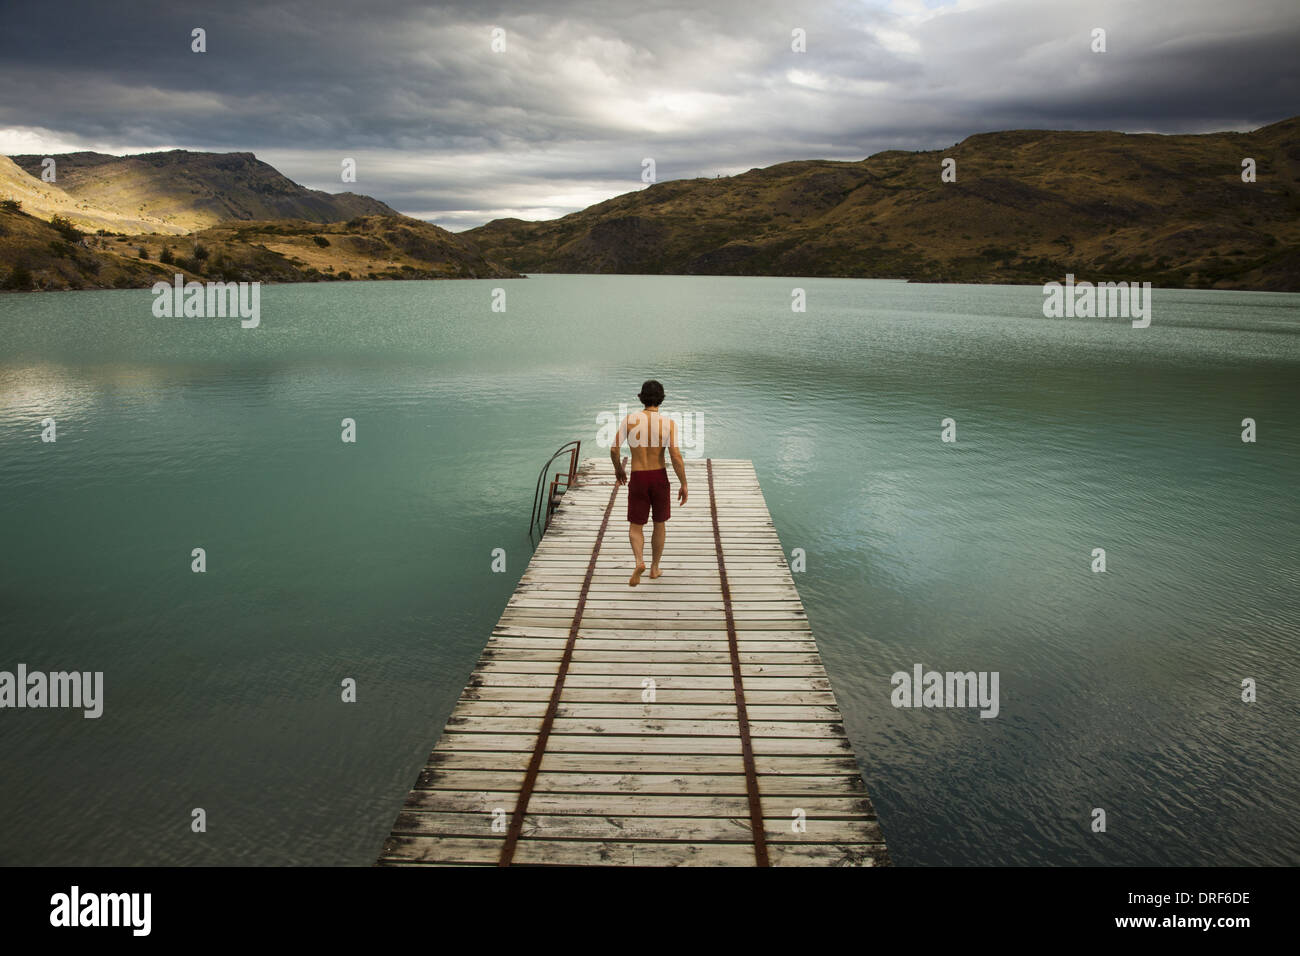 Torres del Paine National Park Chile. young man pier jetty lake Torres del Paine chile - Stock Image